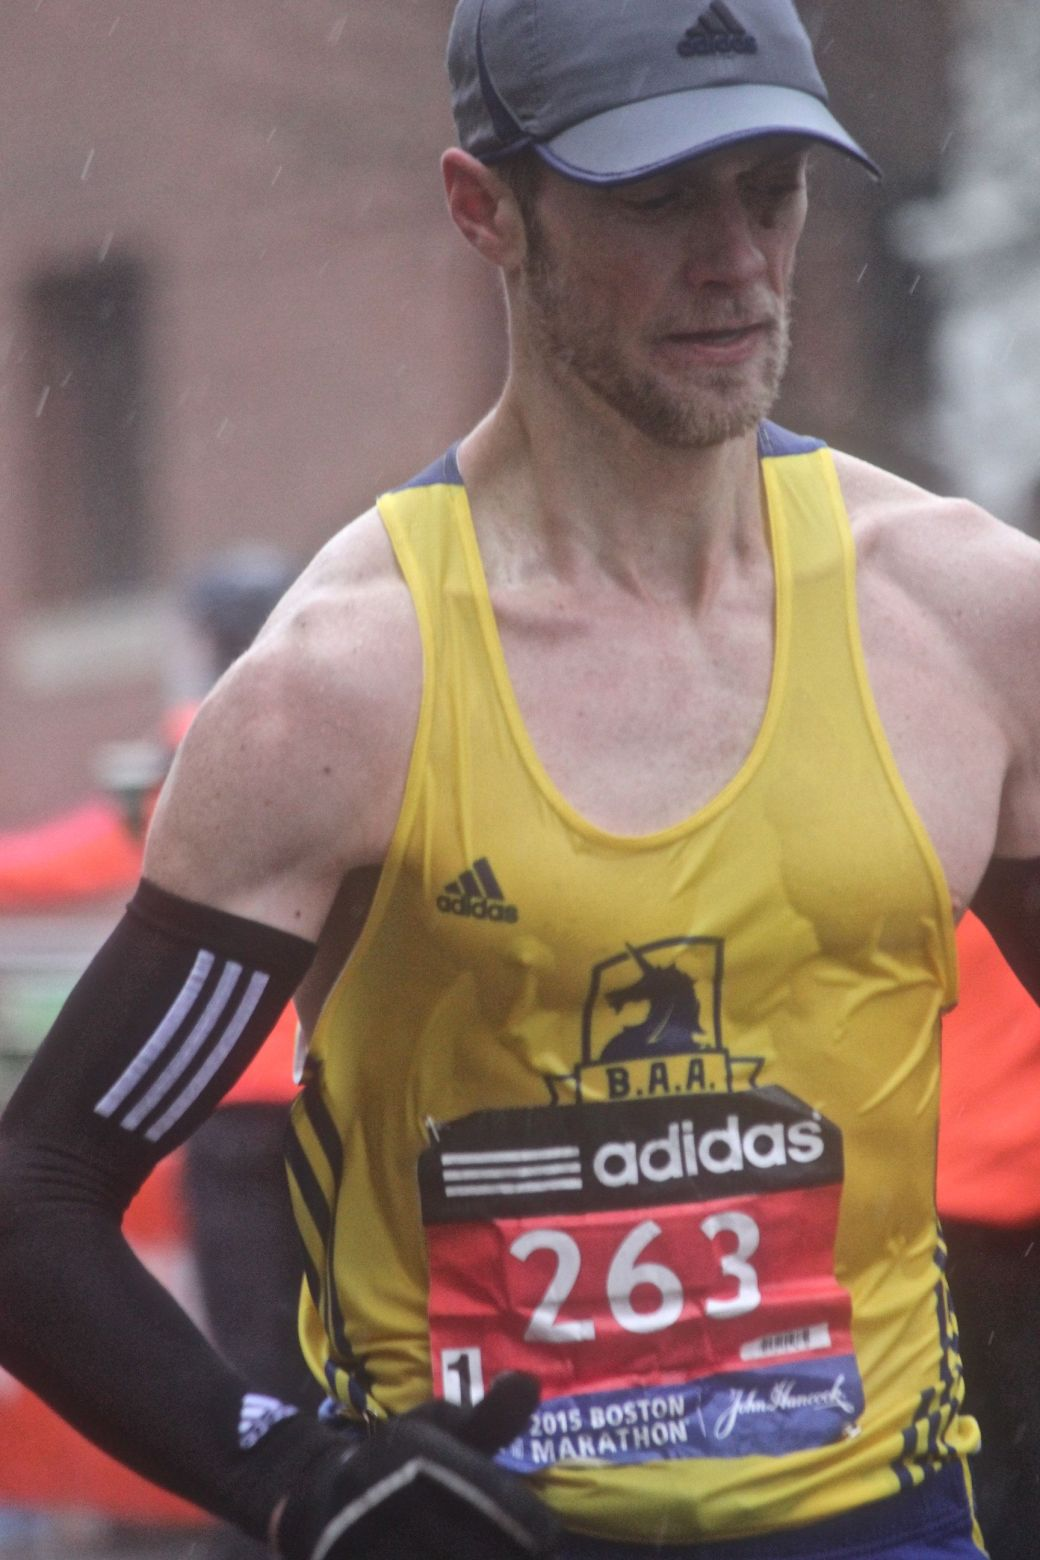 boston marathon april 20 2015 racer number 263 rain